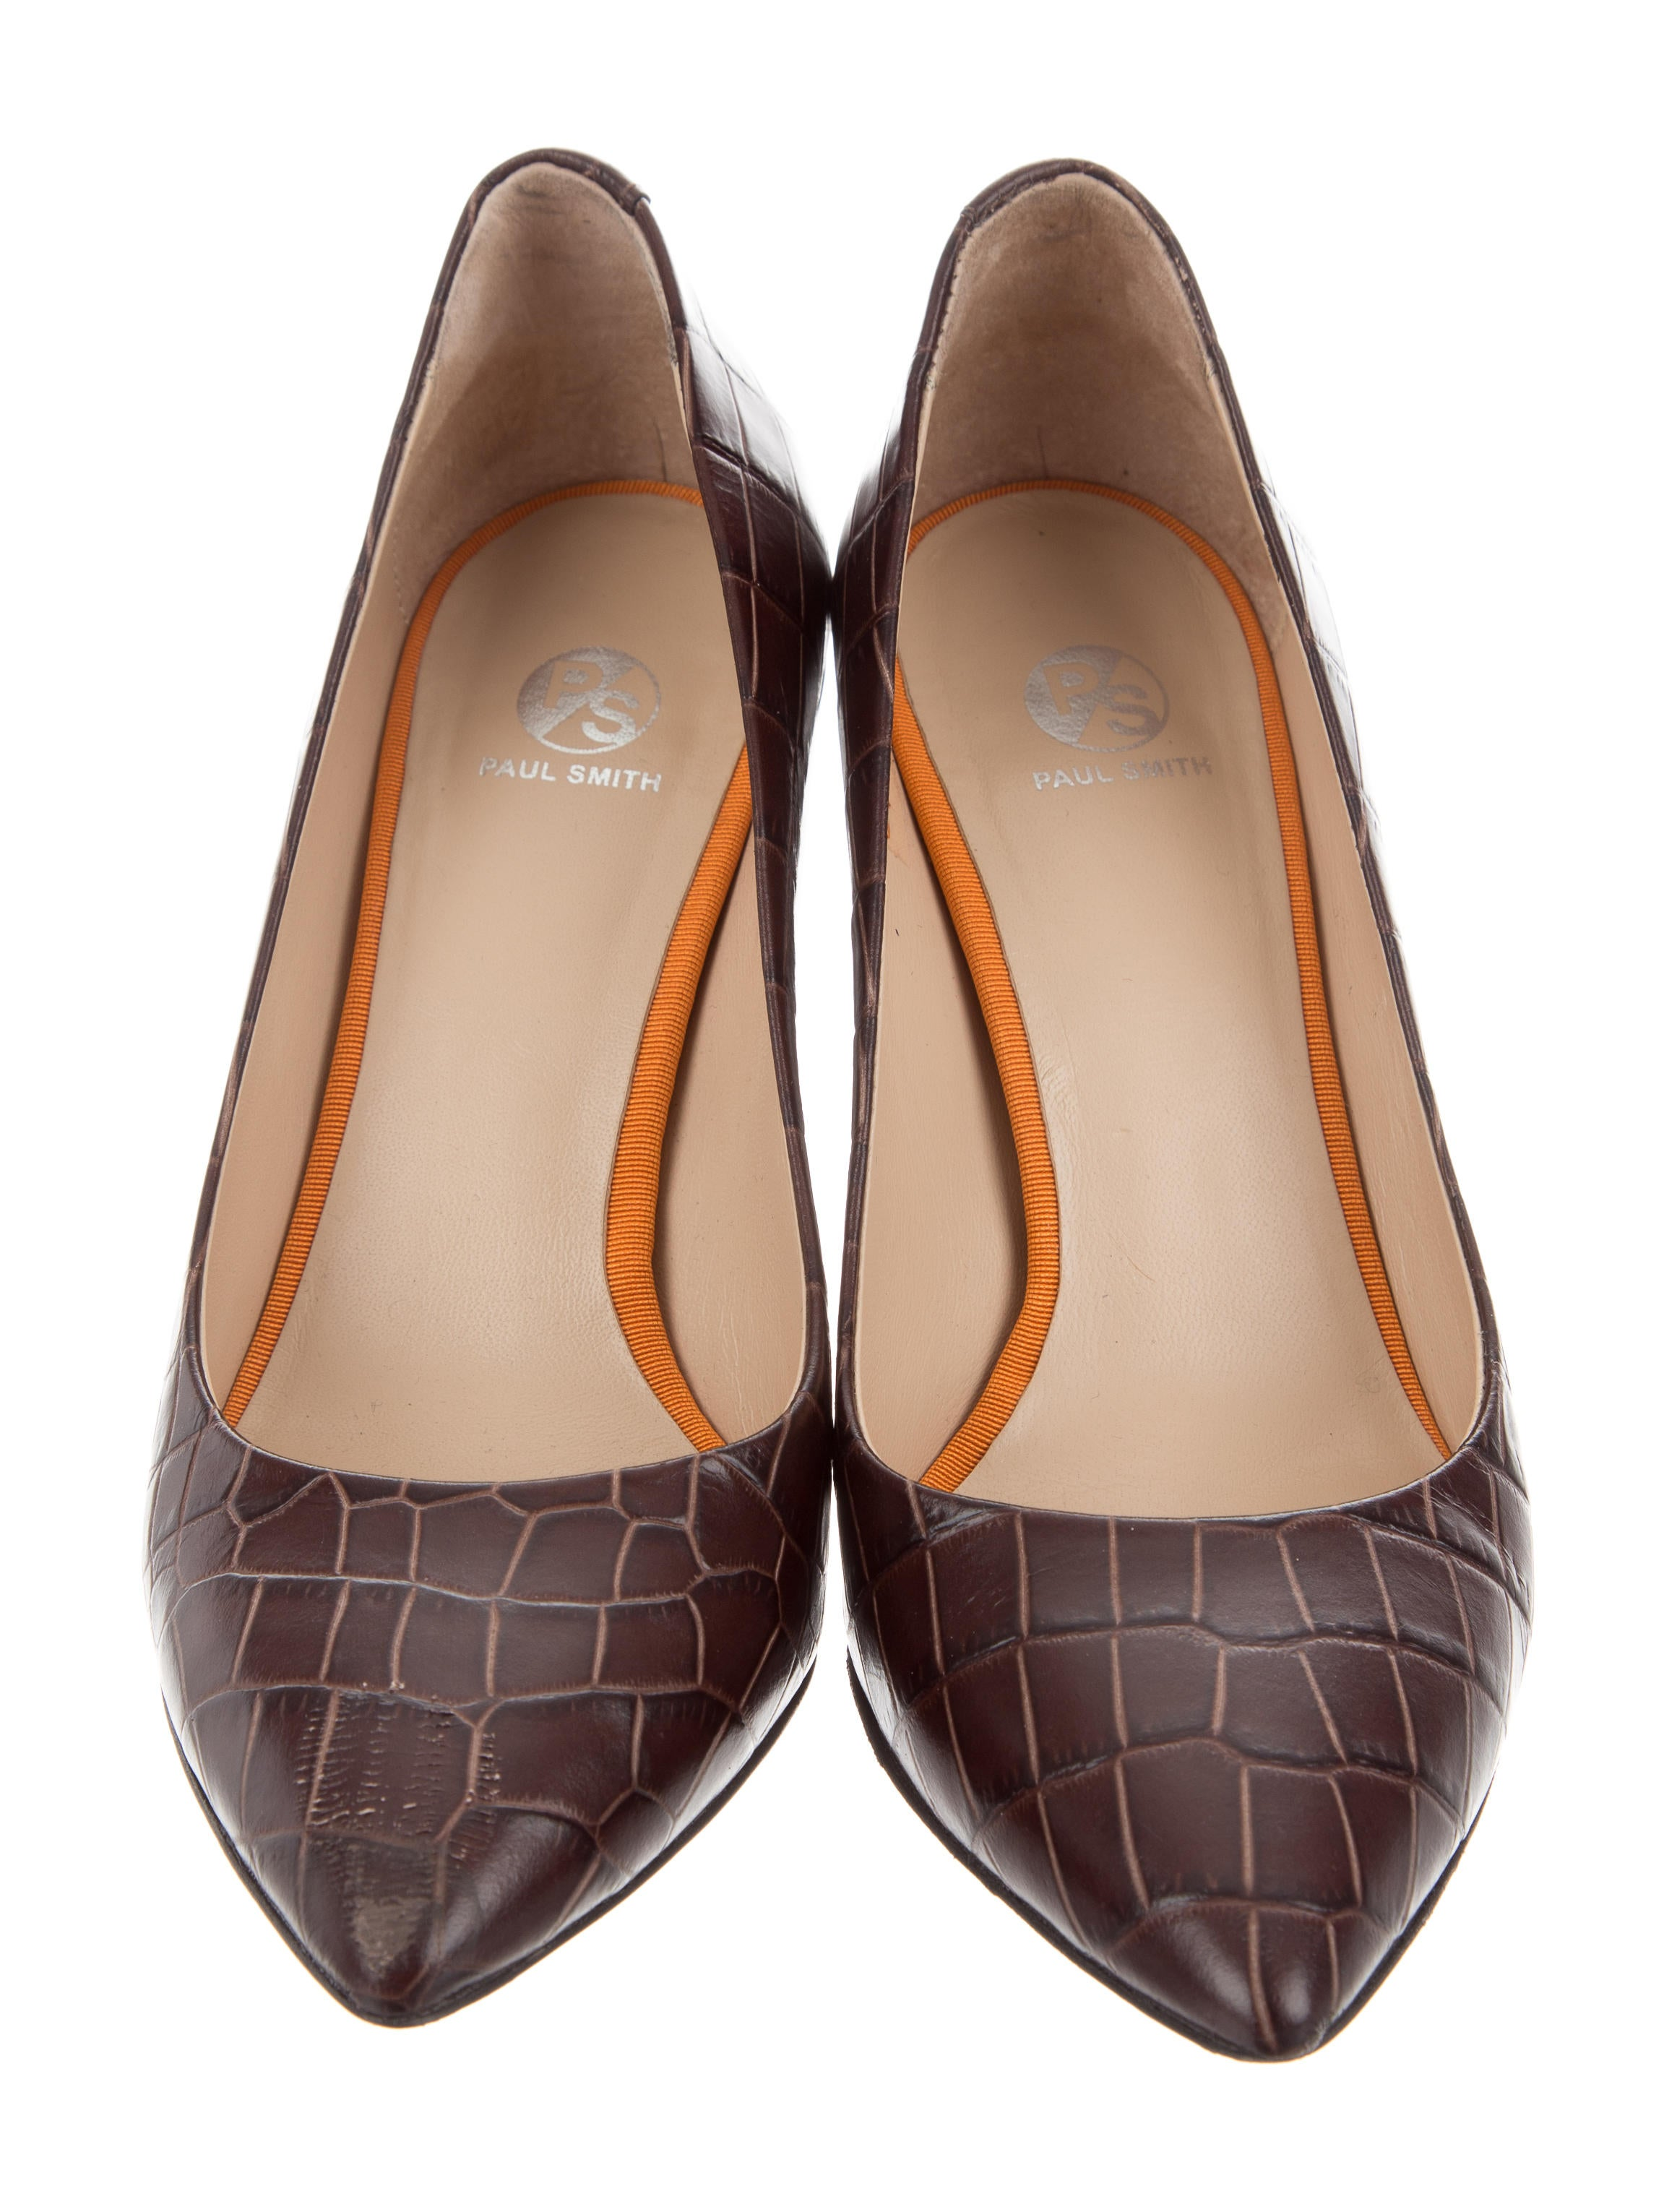 2014 unisex online PS by Paul Smith Embossed Lin Pumps best store to get cheap online outlet locations for sale pick a best cheap online enjoy cheap online t4hZv